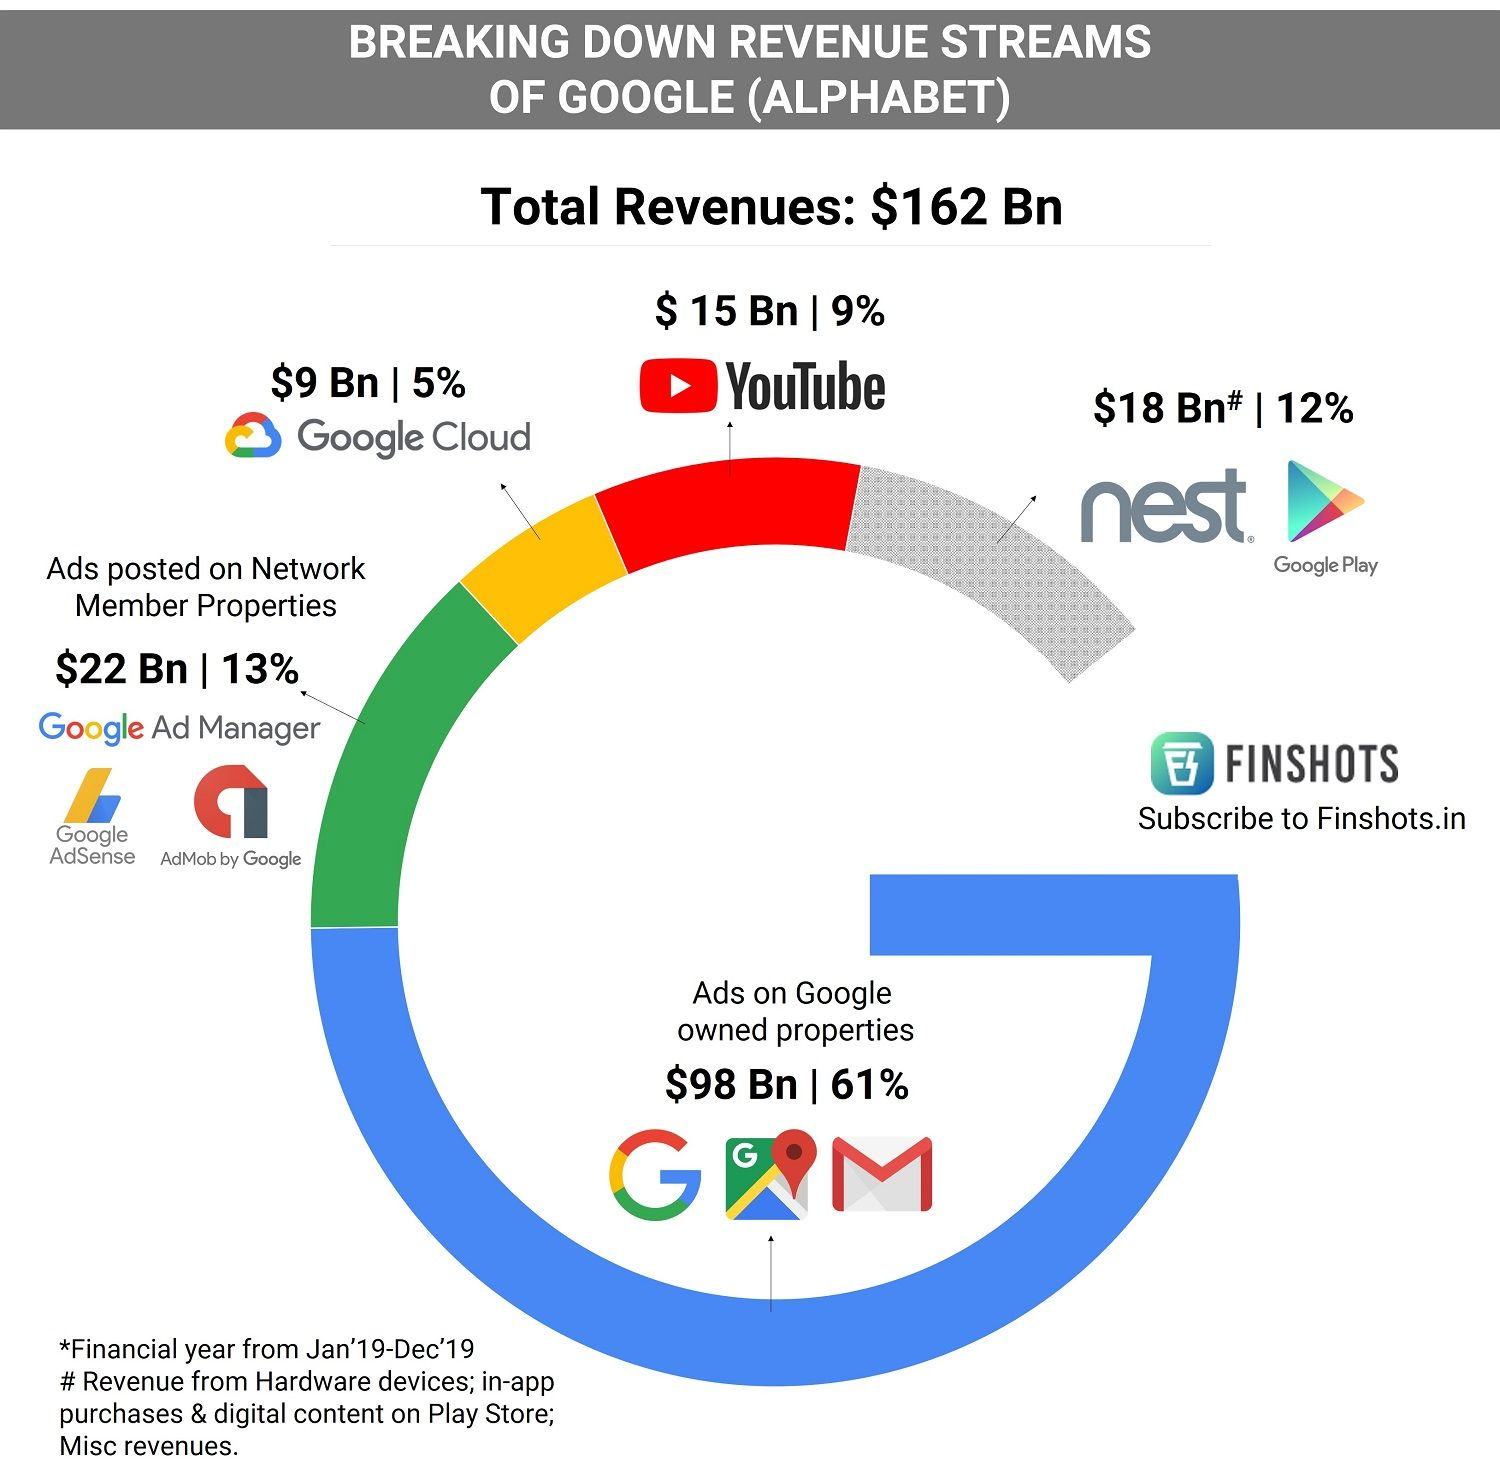 Breaking down revenue streams of Google (Alphabet)